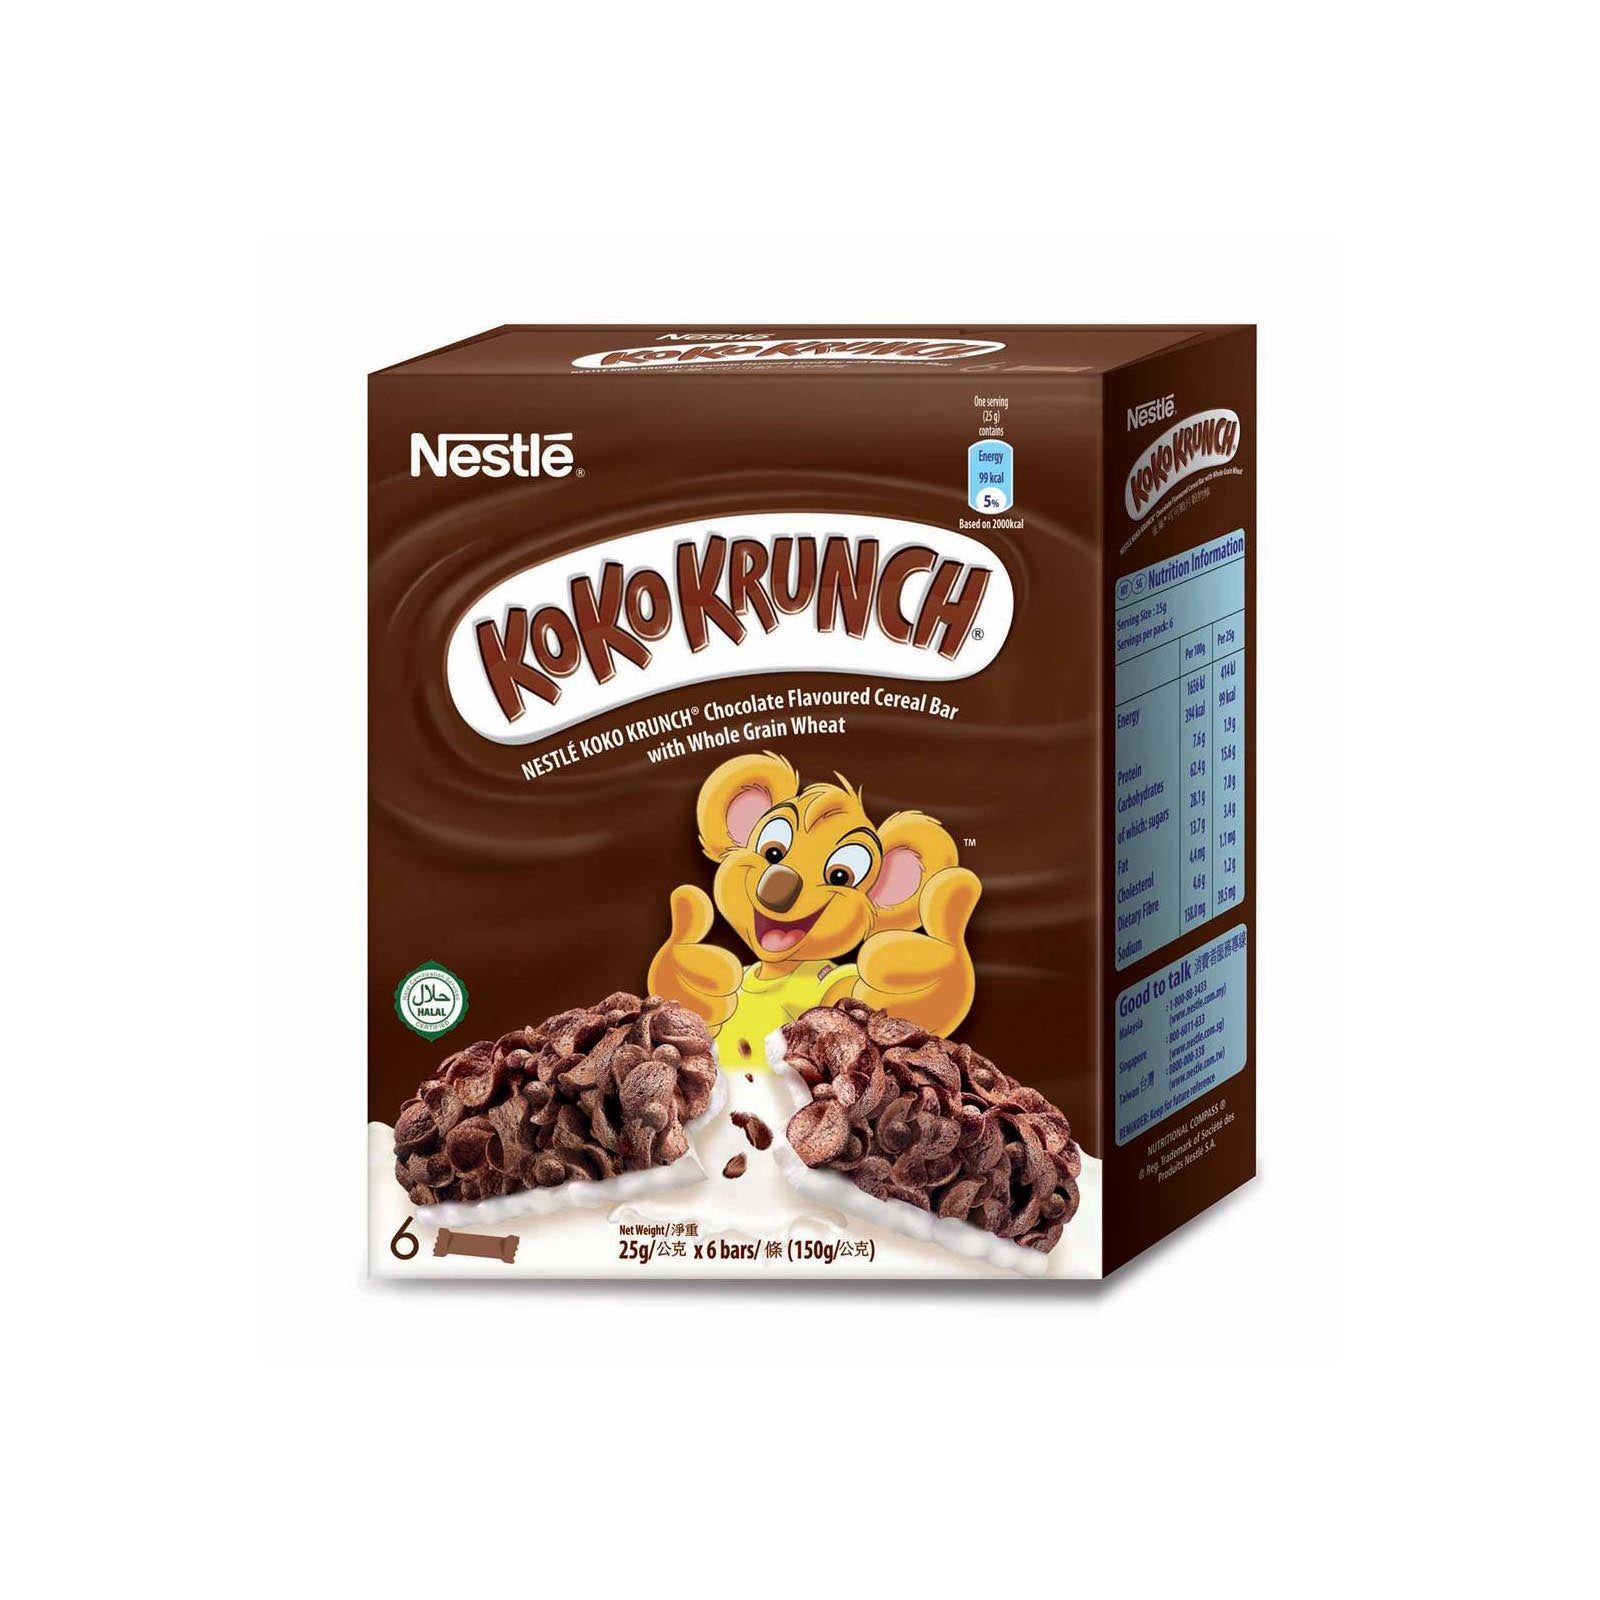 Koko krunch cereal bar multi pack nestle 8x6x25g product type koko krunch cereal bar multi pack nestle 8x6x25g lim siang huat pte ccuart Images